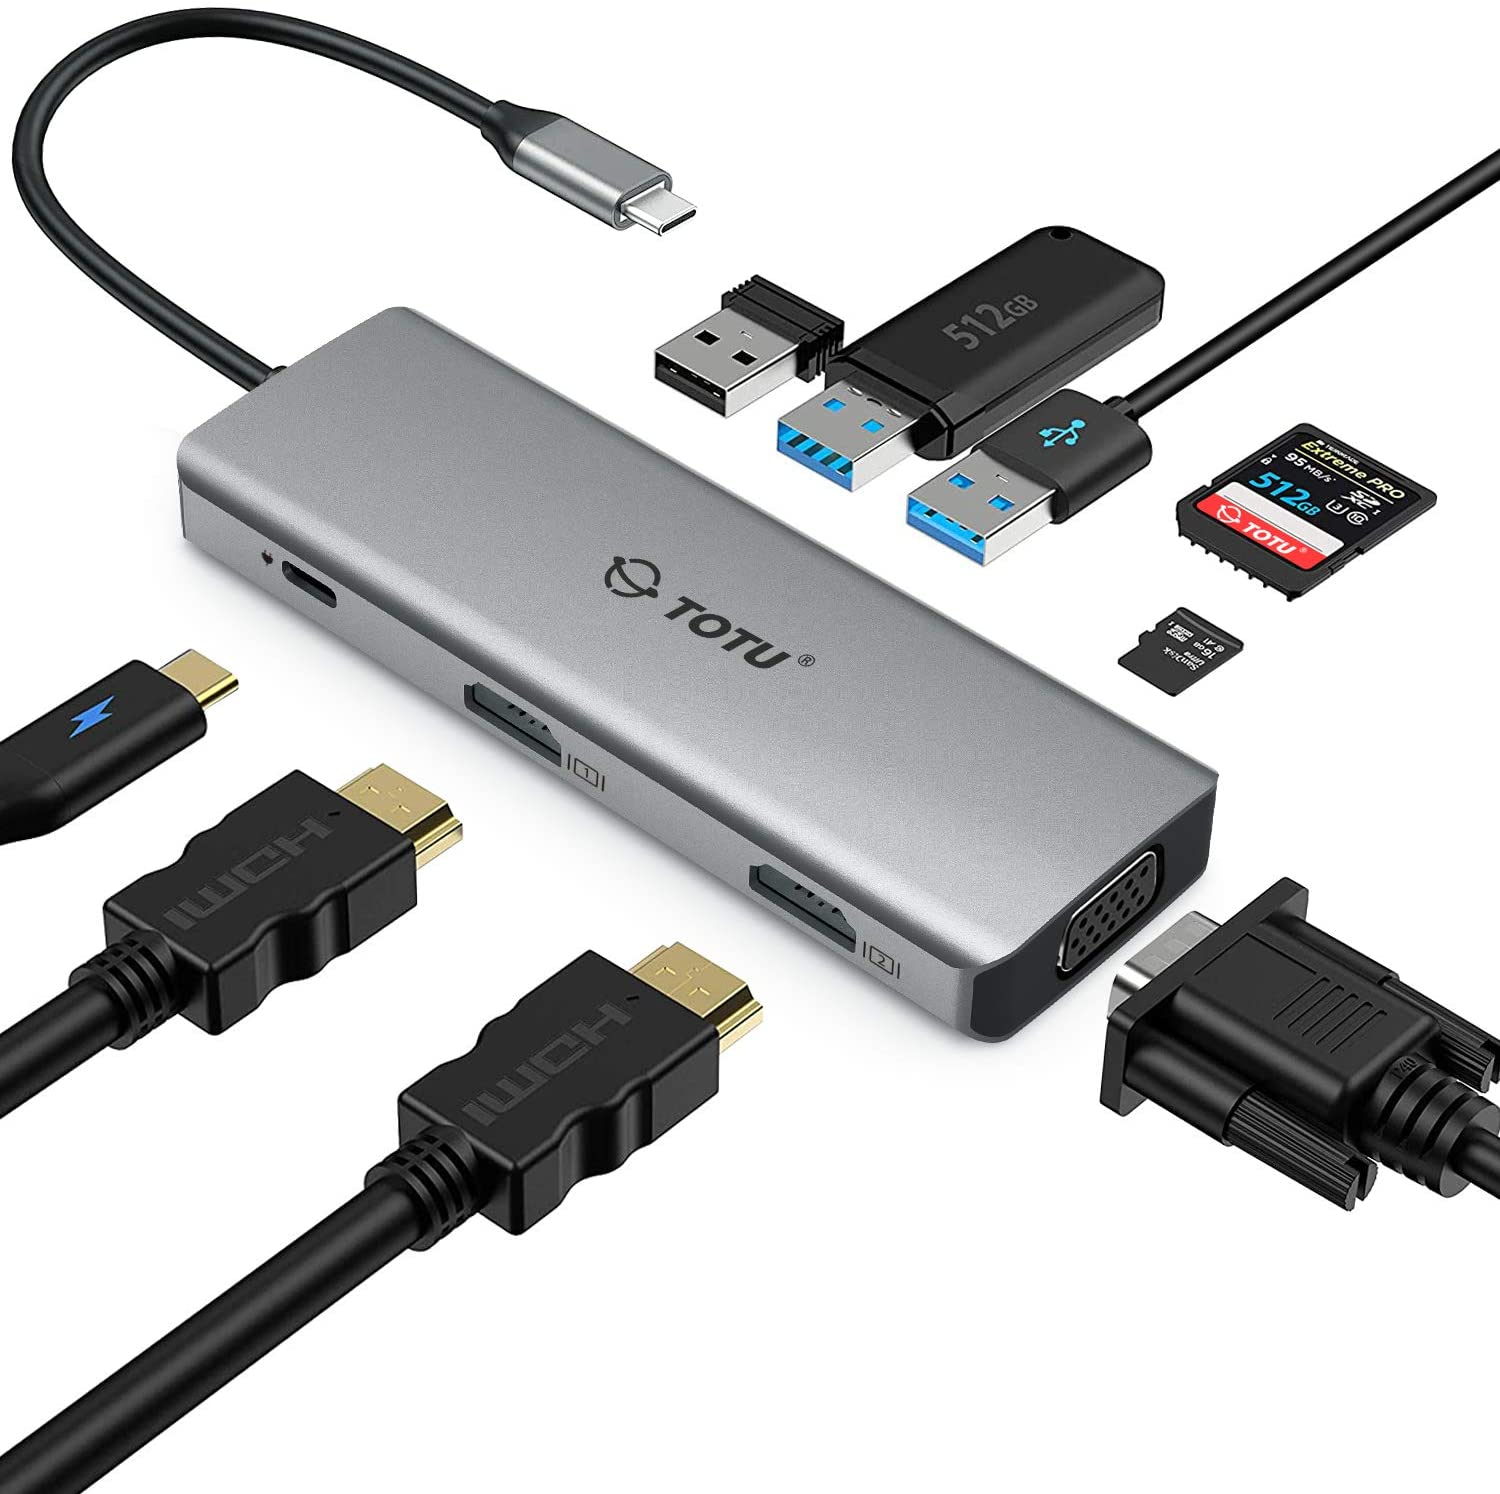 Docking Station, USB C Hub, TOTU 9 in 1 Triple Display Docking Station with Collage Display Mode, Dual 4K HDMI, VGA, 100W PD, 3 USB 3.0 and TF/SD Card Reader for MacBook Pro Air and Type-C Laptops